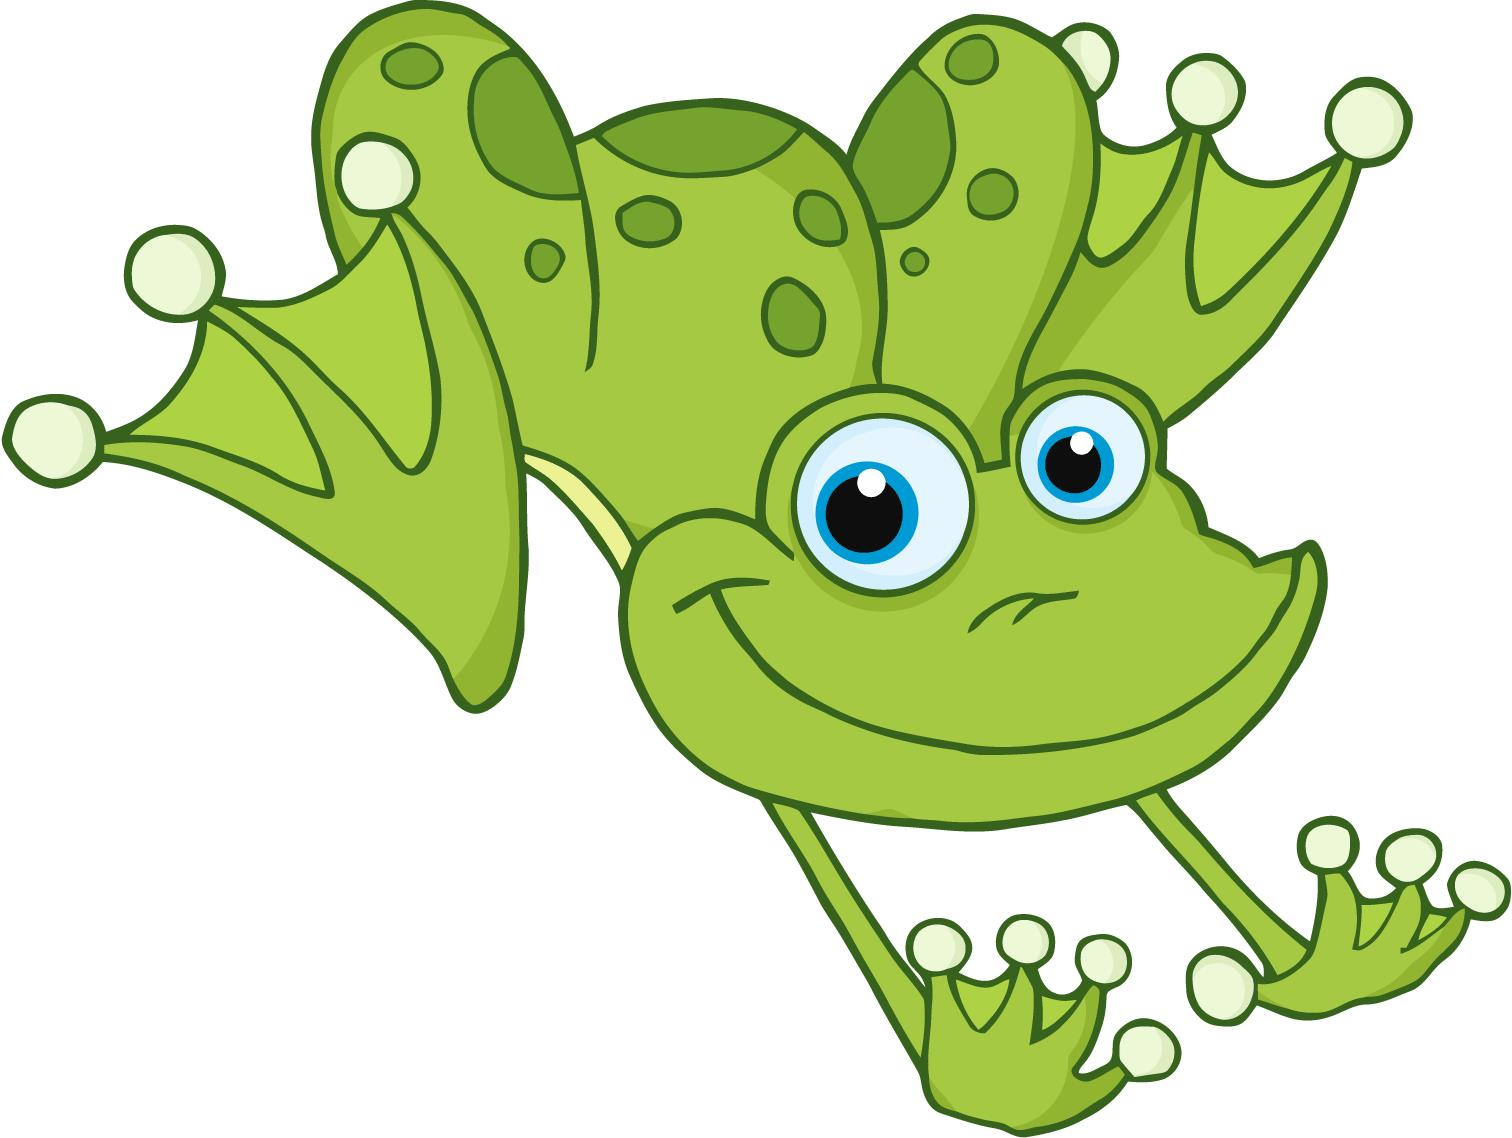 learning ideas grades k 8 why do frogs have webbed feet activity